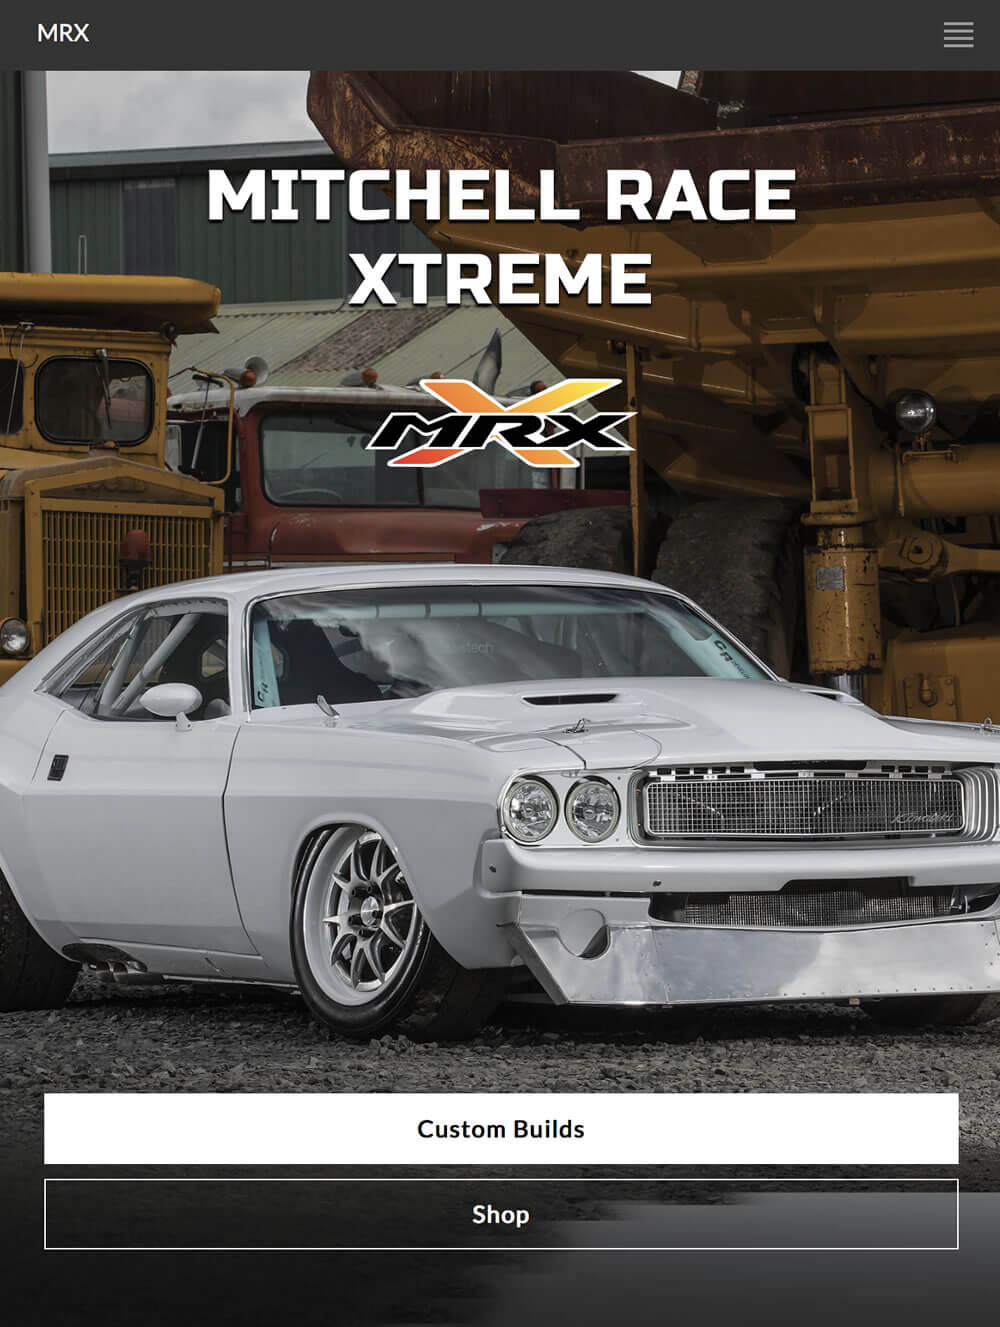 Mitchell Race Xtreme website by Piccante Web Design